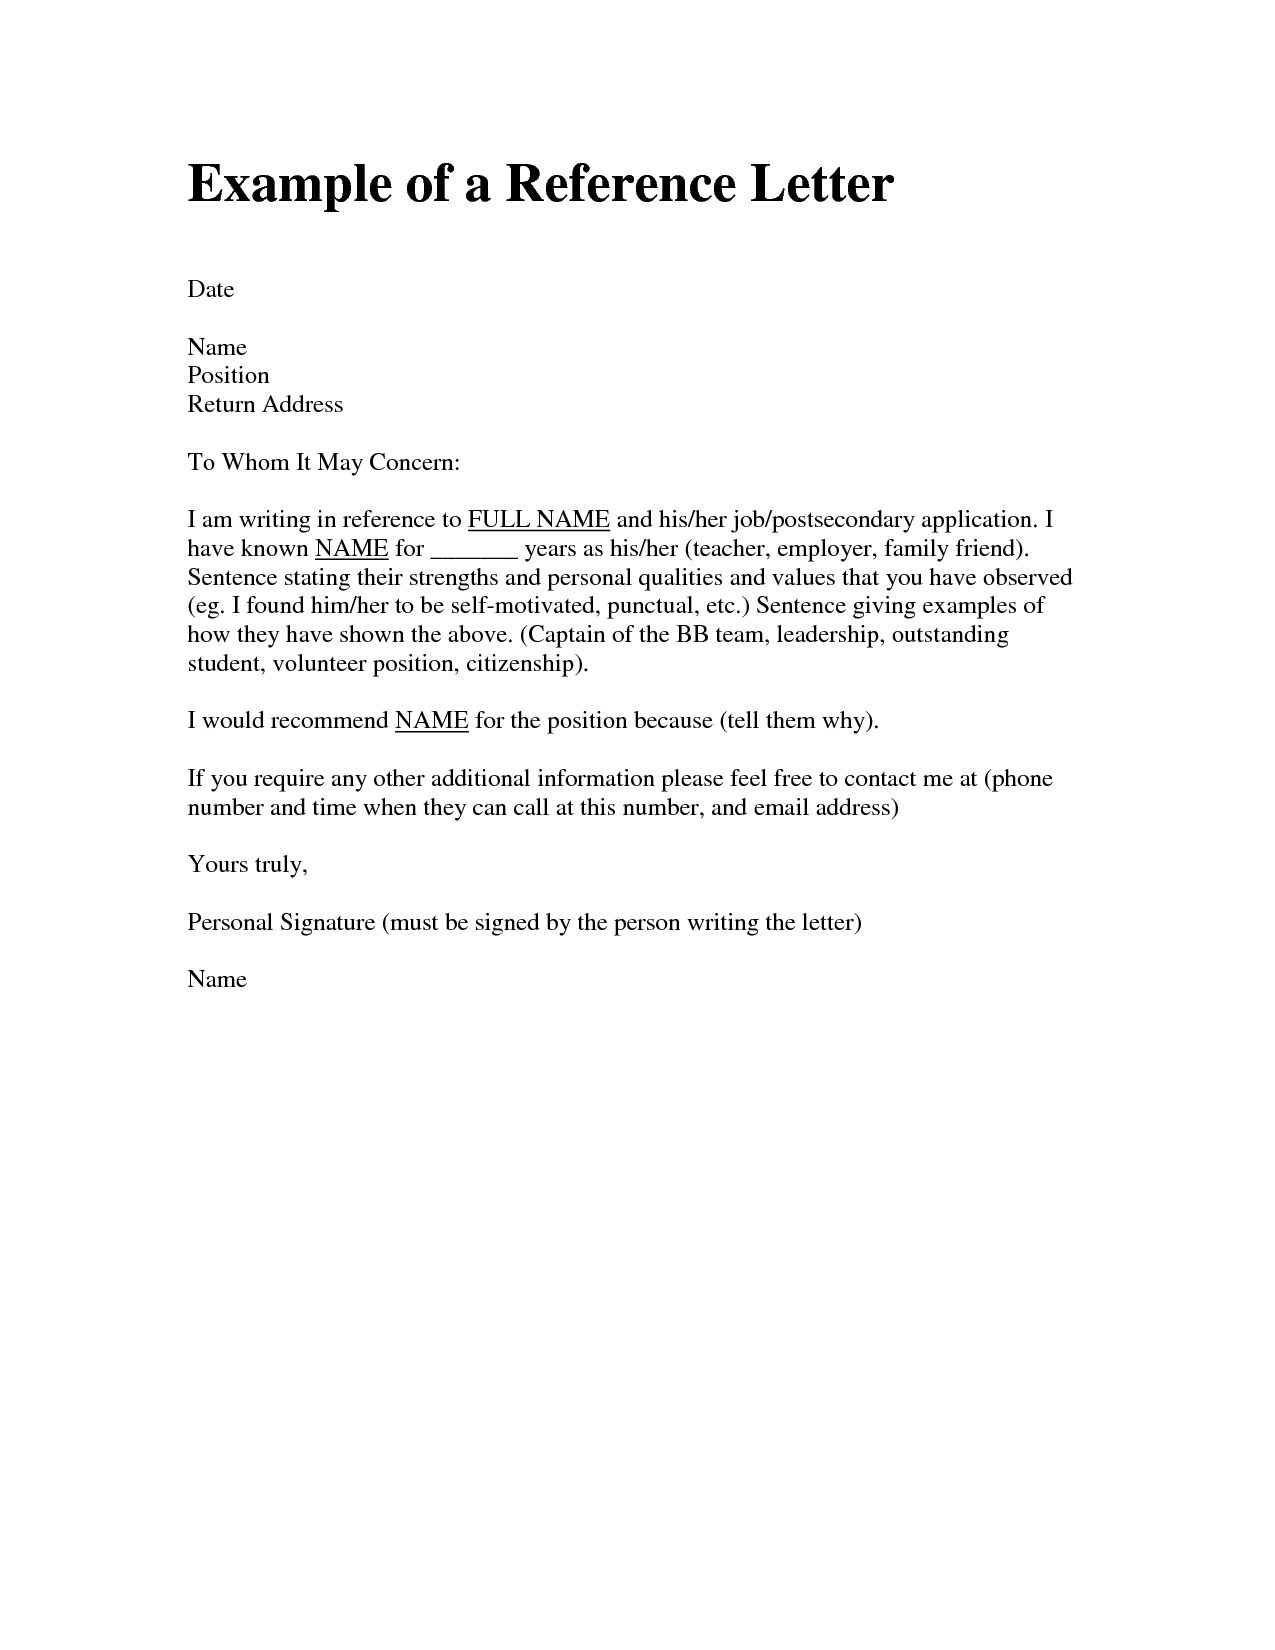 Write a reference letter for me! Character Reference Letter Sample